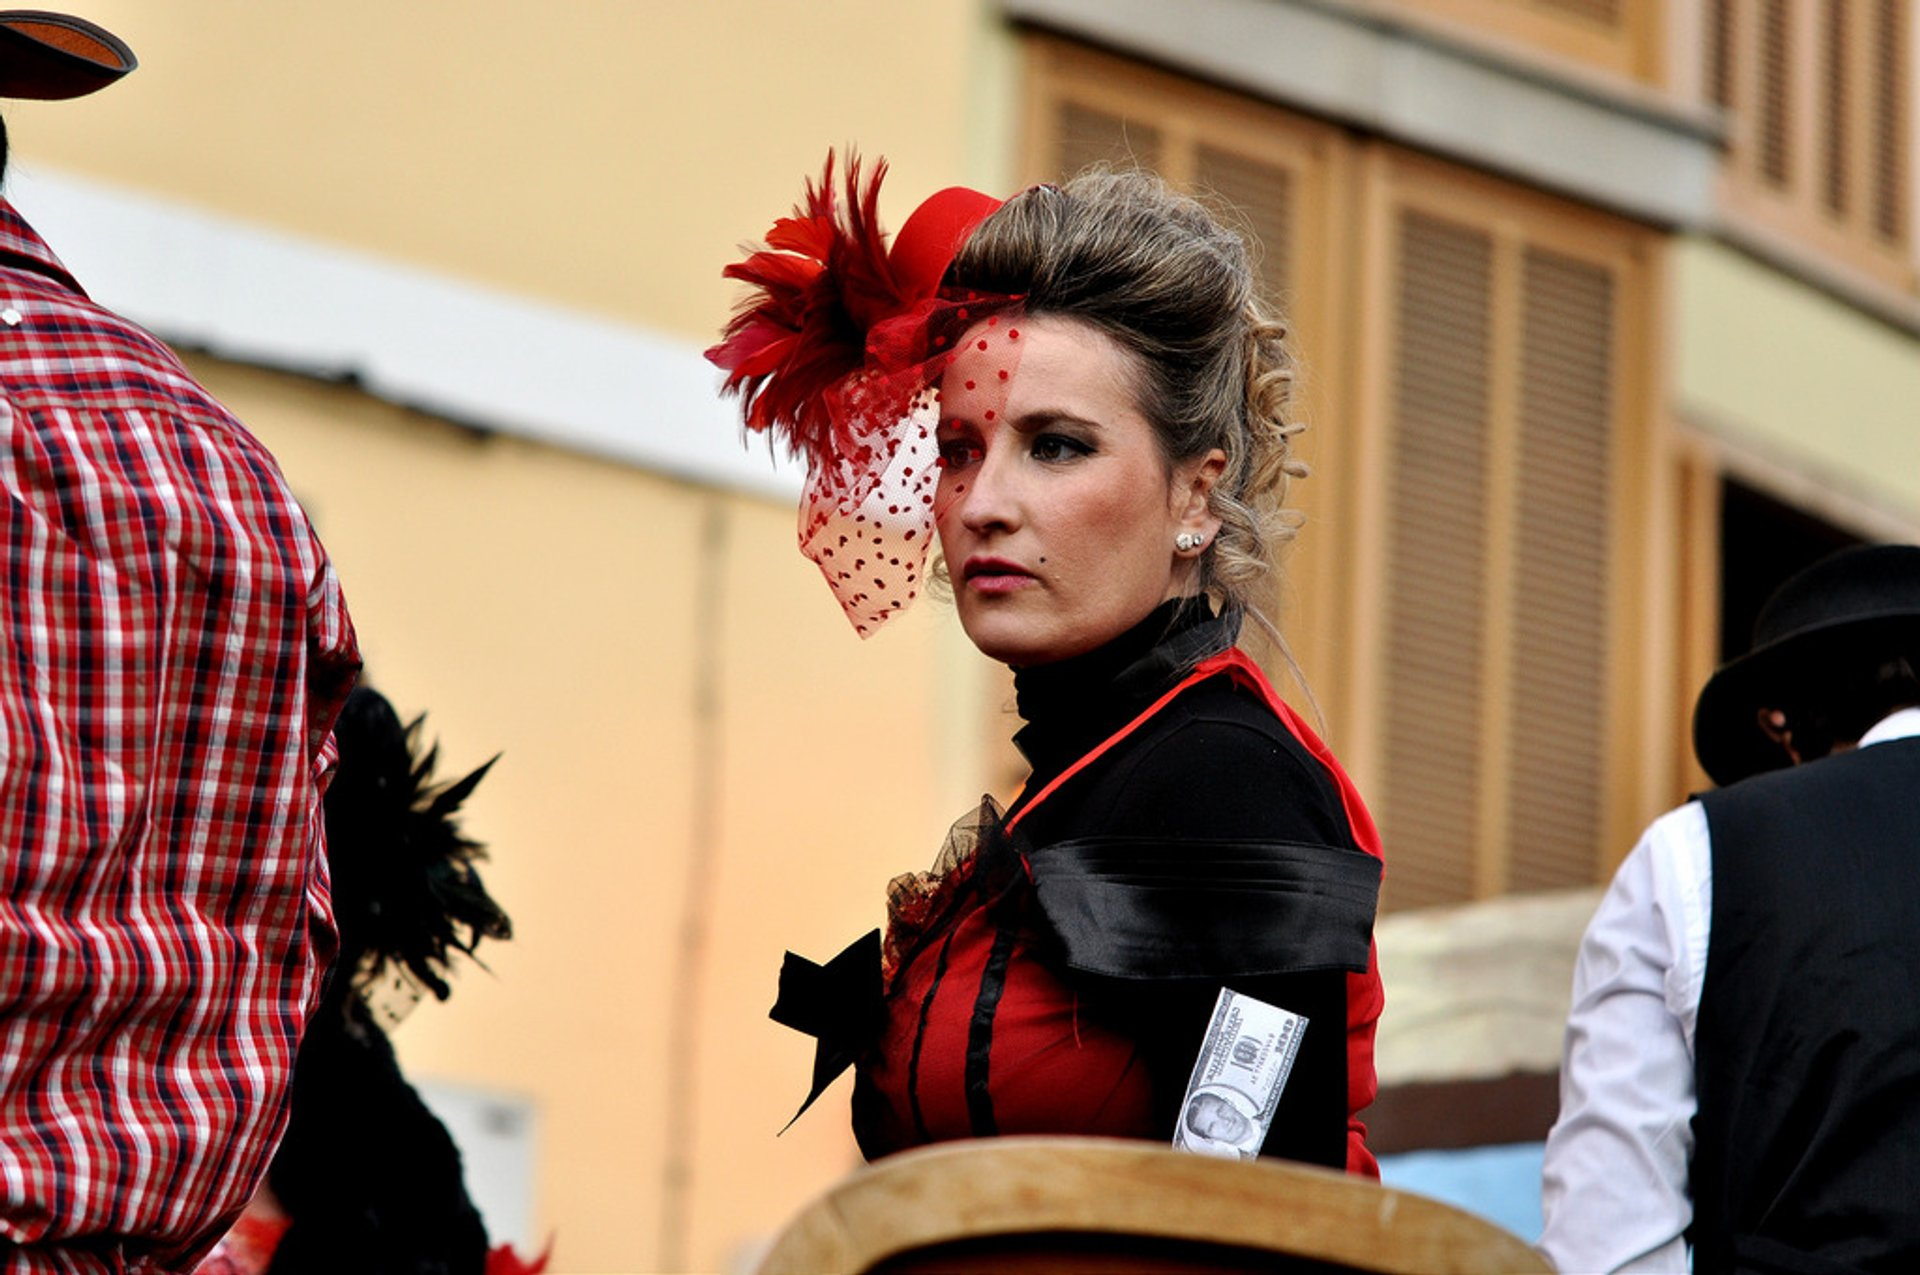 Sa Rua and Sa Rueta Carnival in Mallorca - Best Season 2020